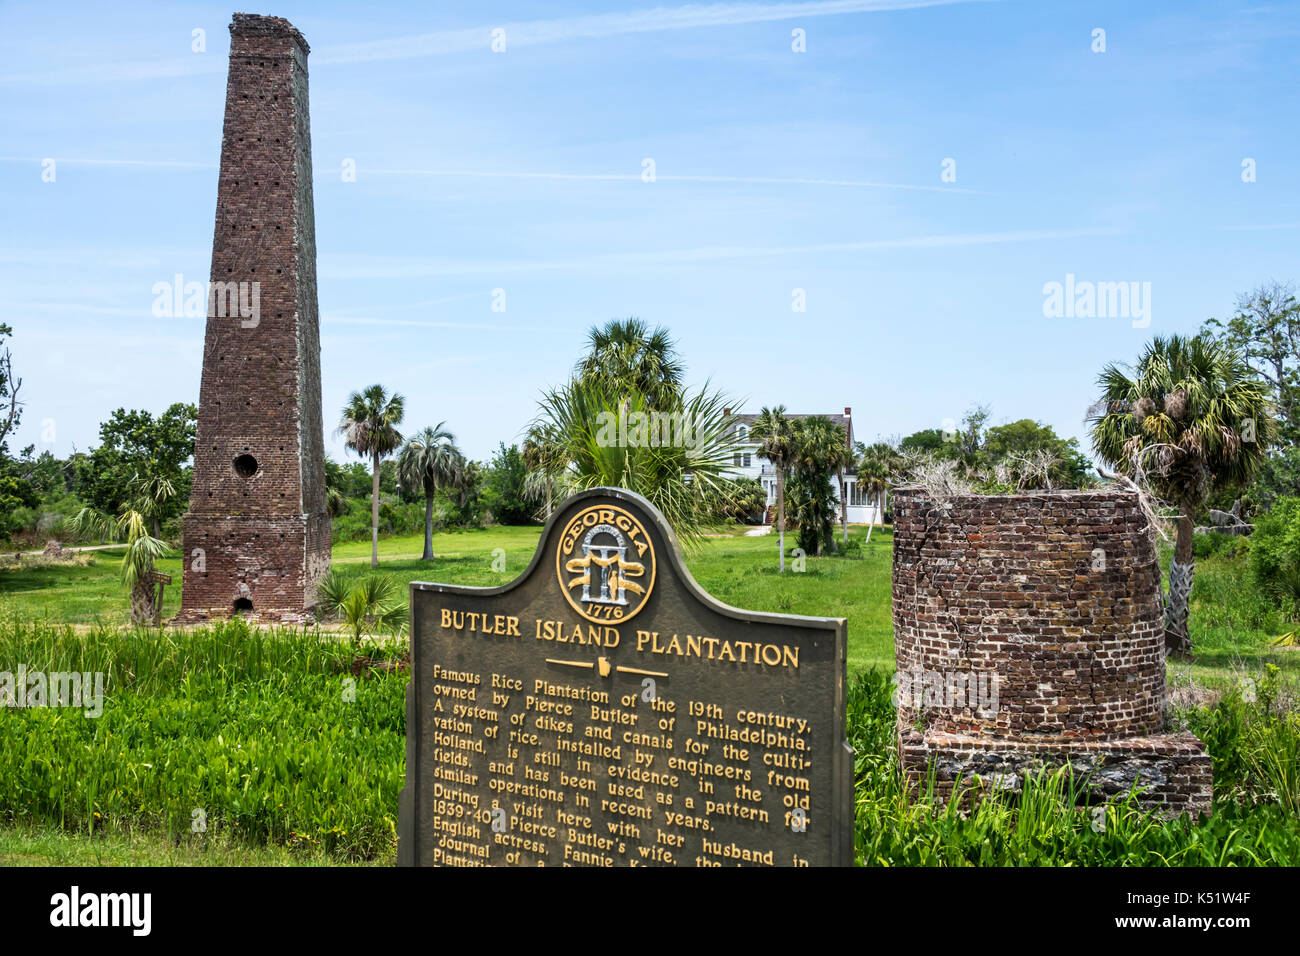 Darien Georgia Butler Island Plantation rice plantation Civil War historic site steam-operated rice mill marker - Stock Image